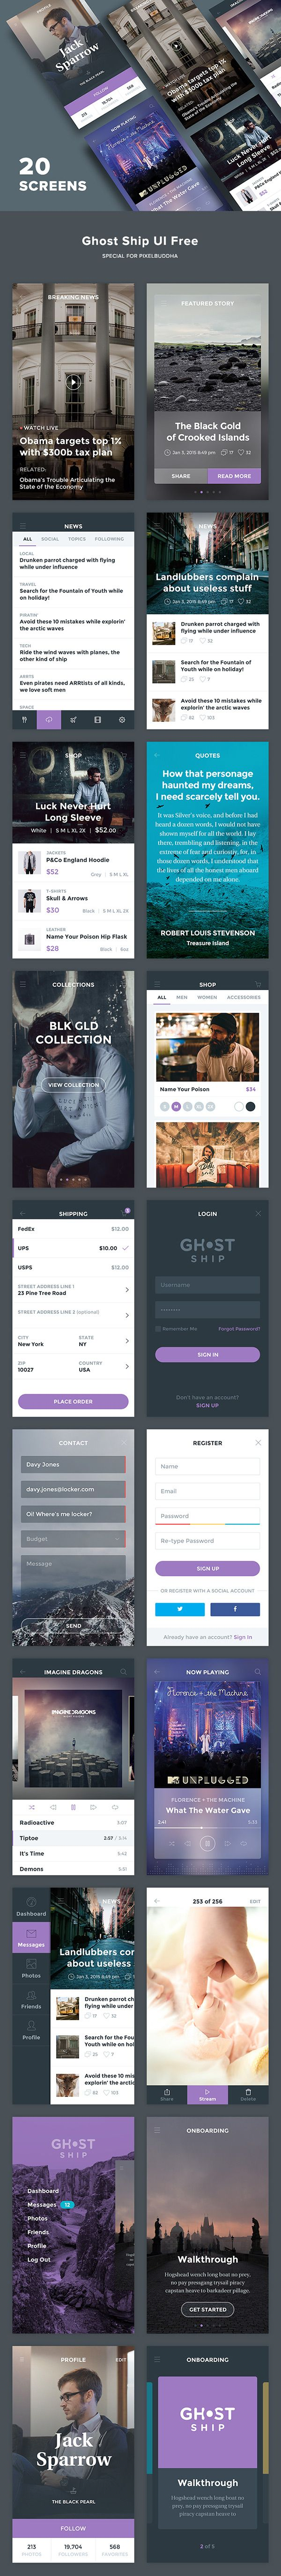 Ghost Ship Mobile UI Kit Free | GraphicBurger